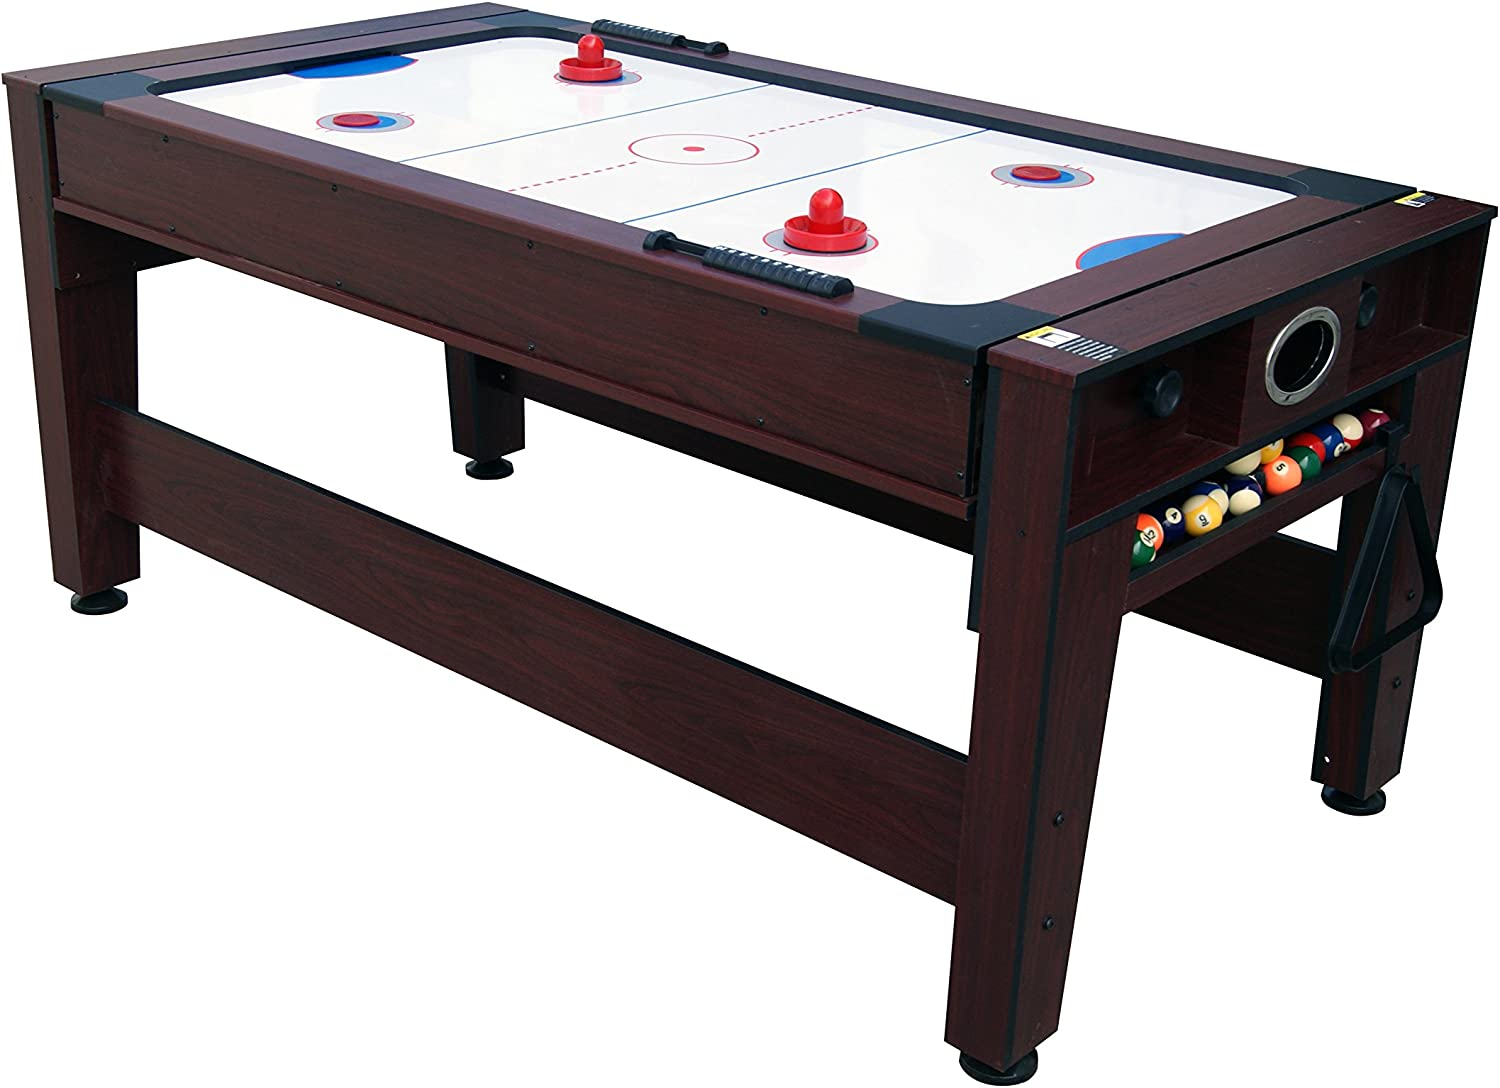 Solex 2-in-1 Cable Giratorio Billar y Mesa de Air Hockey: Amazon ...